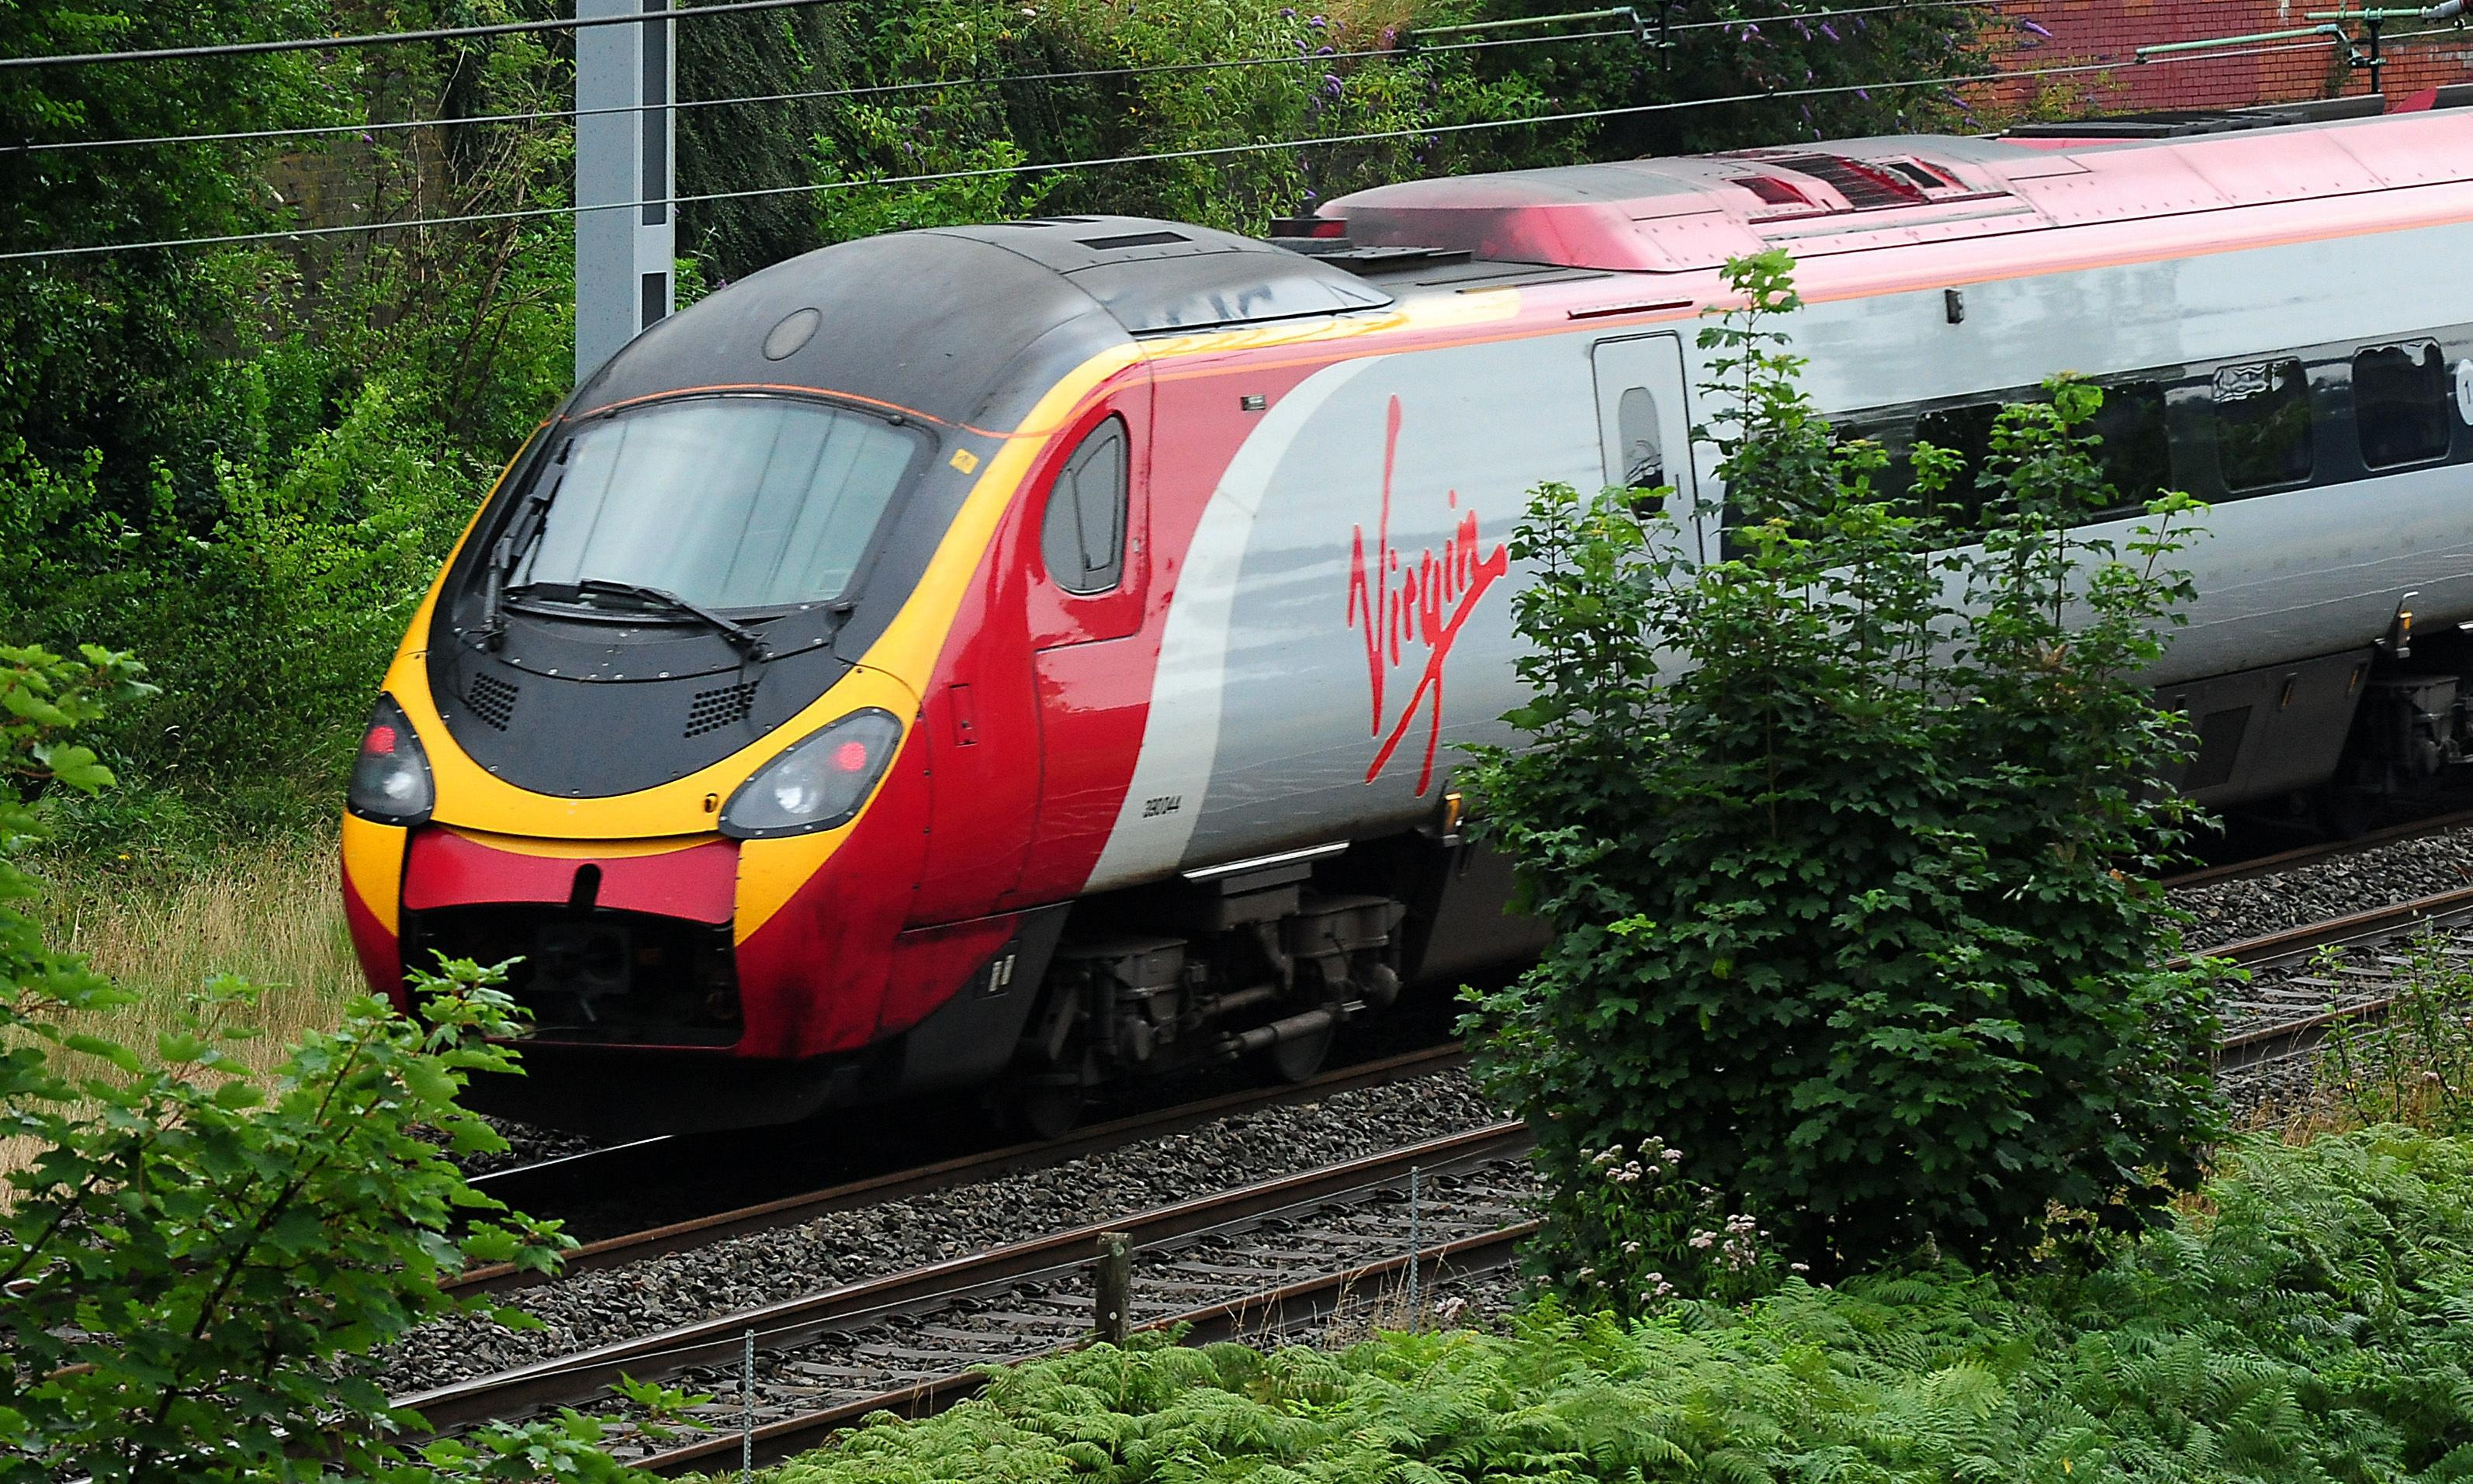 Exit of Virgin Trains leaves behind a muddle over pension liabilities